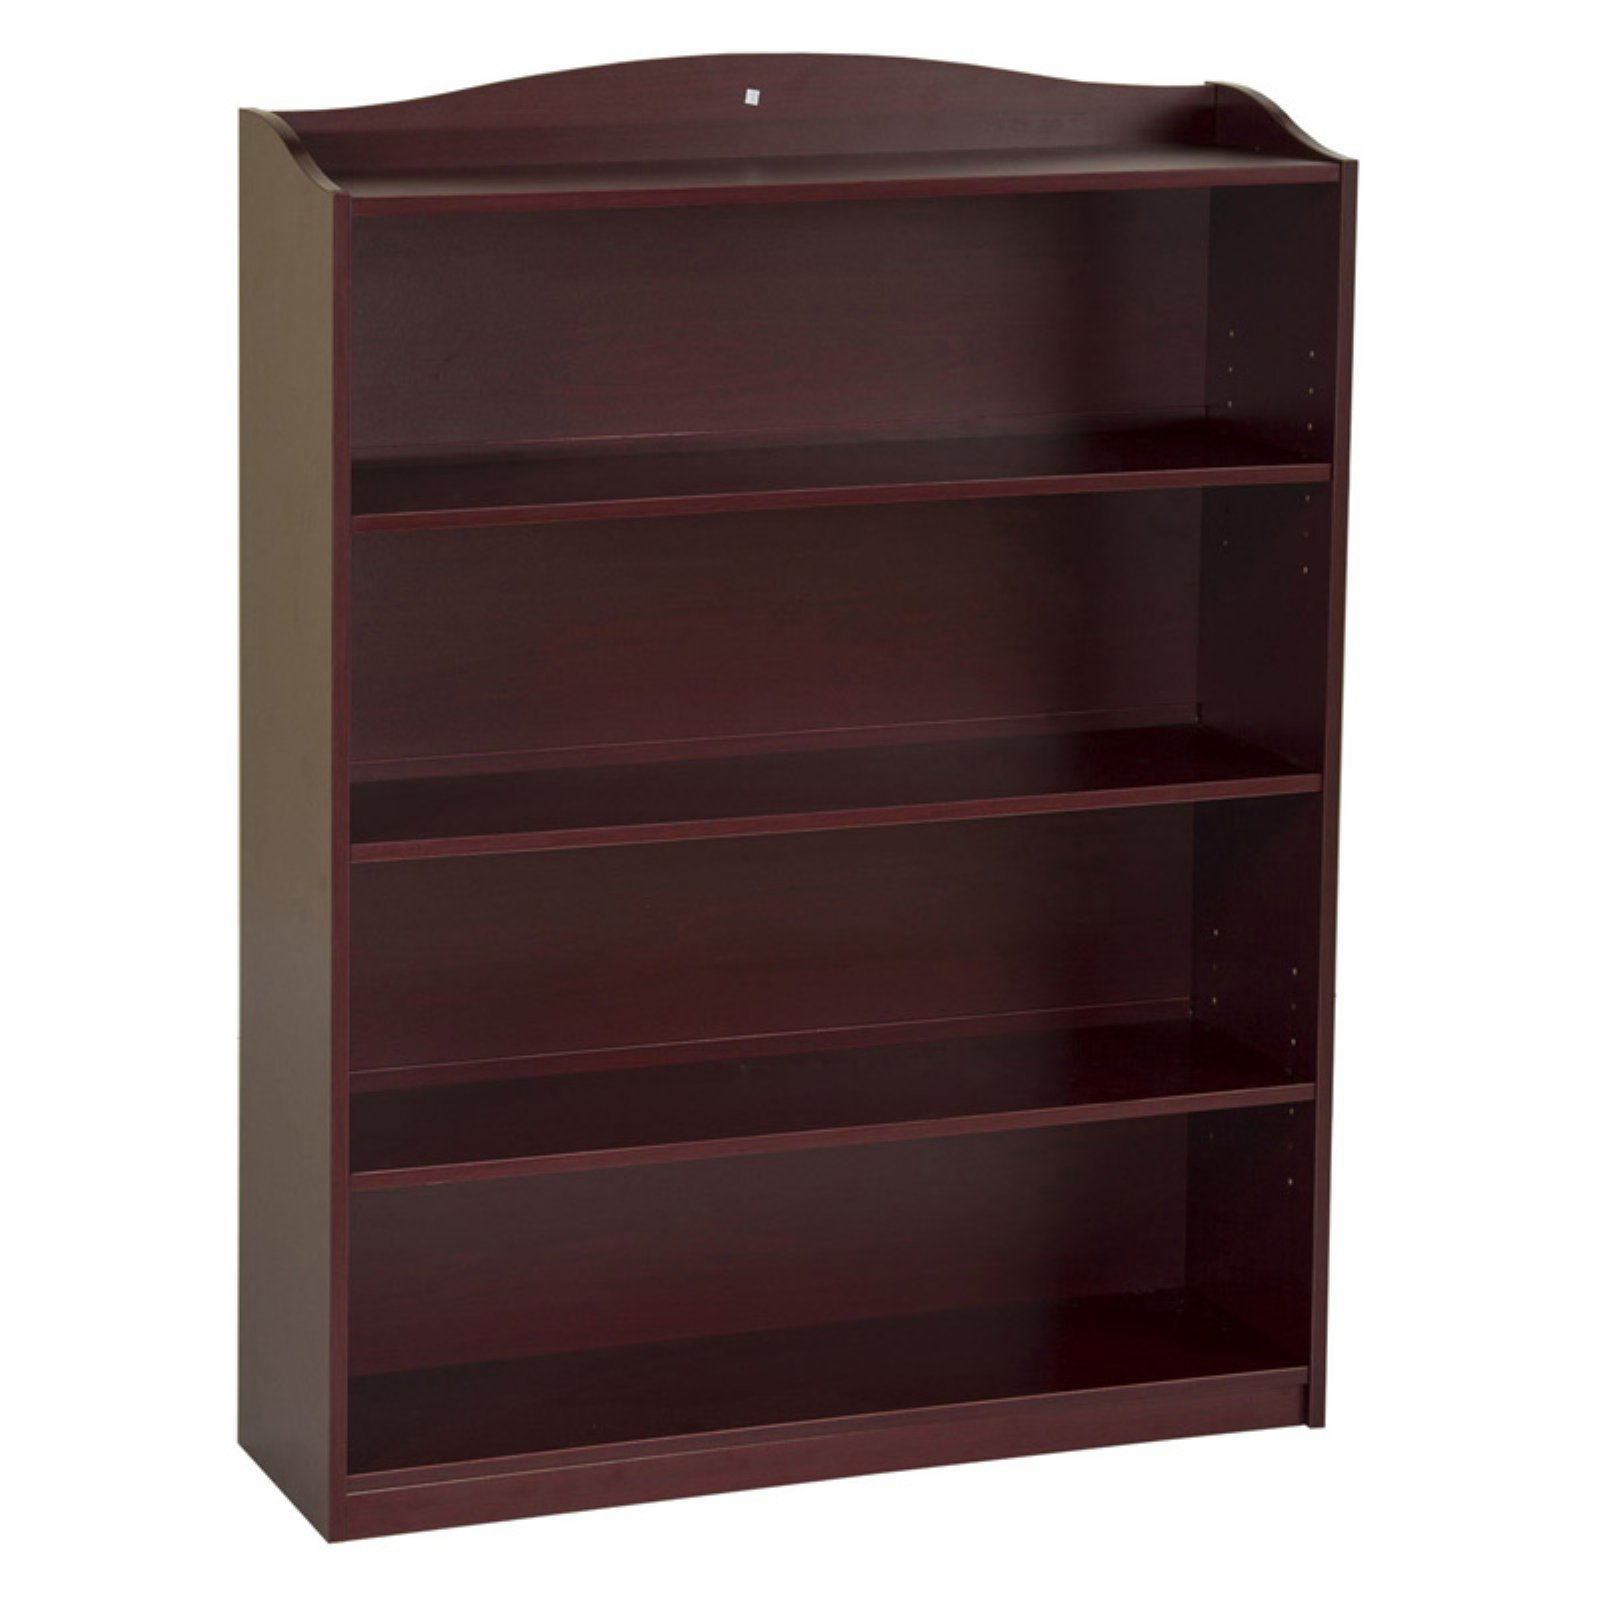 Guidecraft 5-Shelf Bookshelf, Cherry